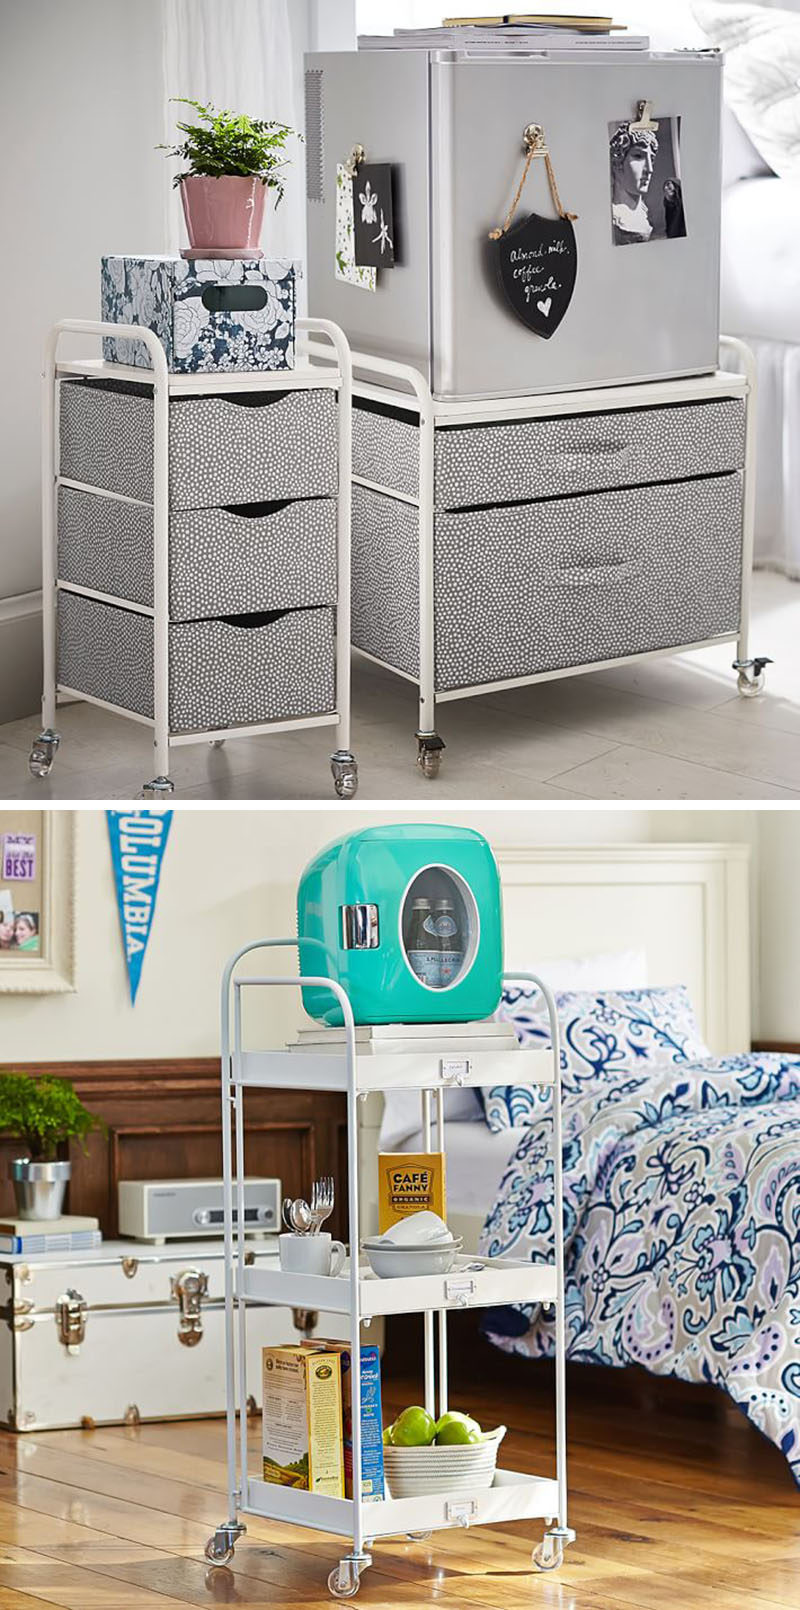 Ideas For Dorm Room: Must-Have Essentials + Decor Ideas